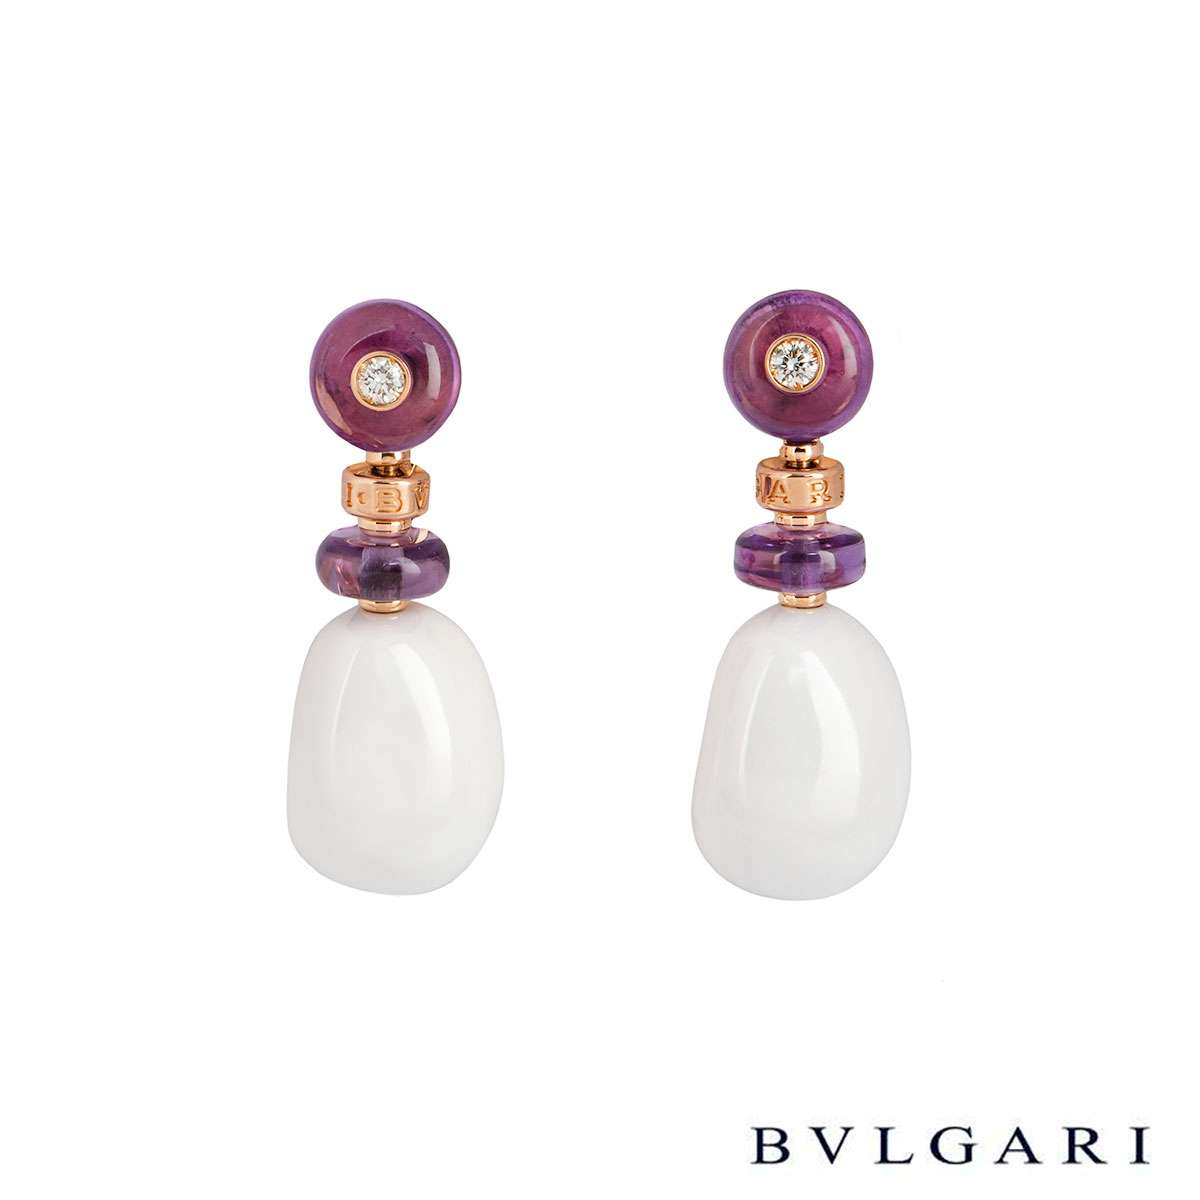 Bvlgari Rose Gold Diamond & Multi-Gem Mediterranean Eden Earrings